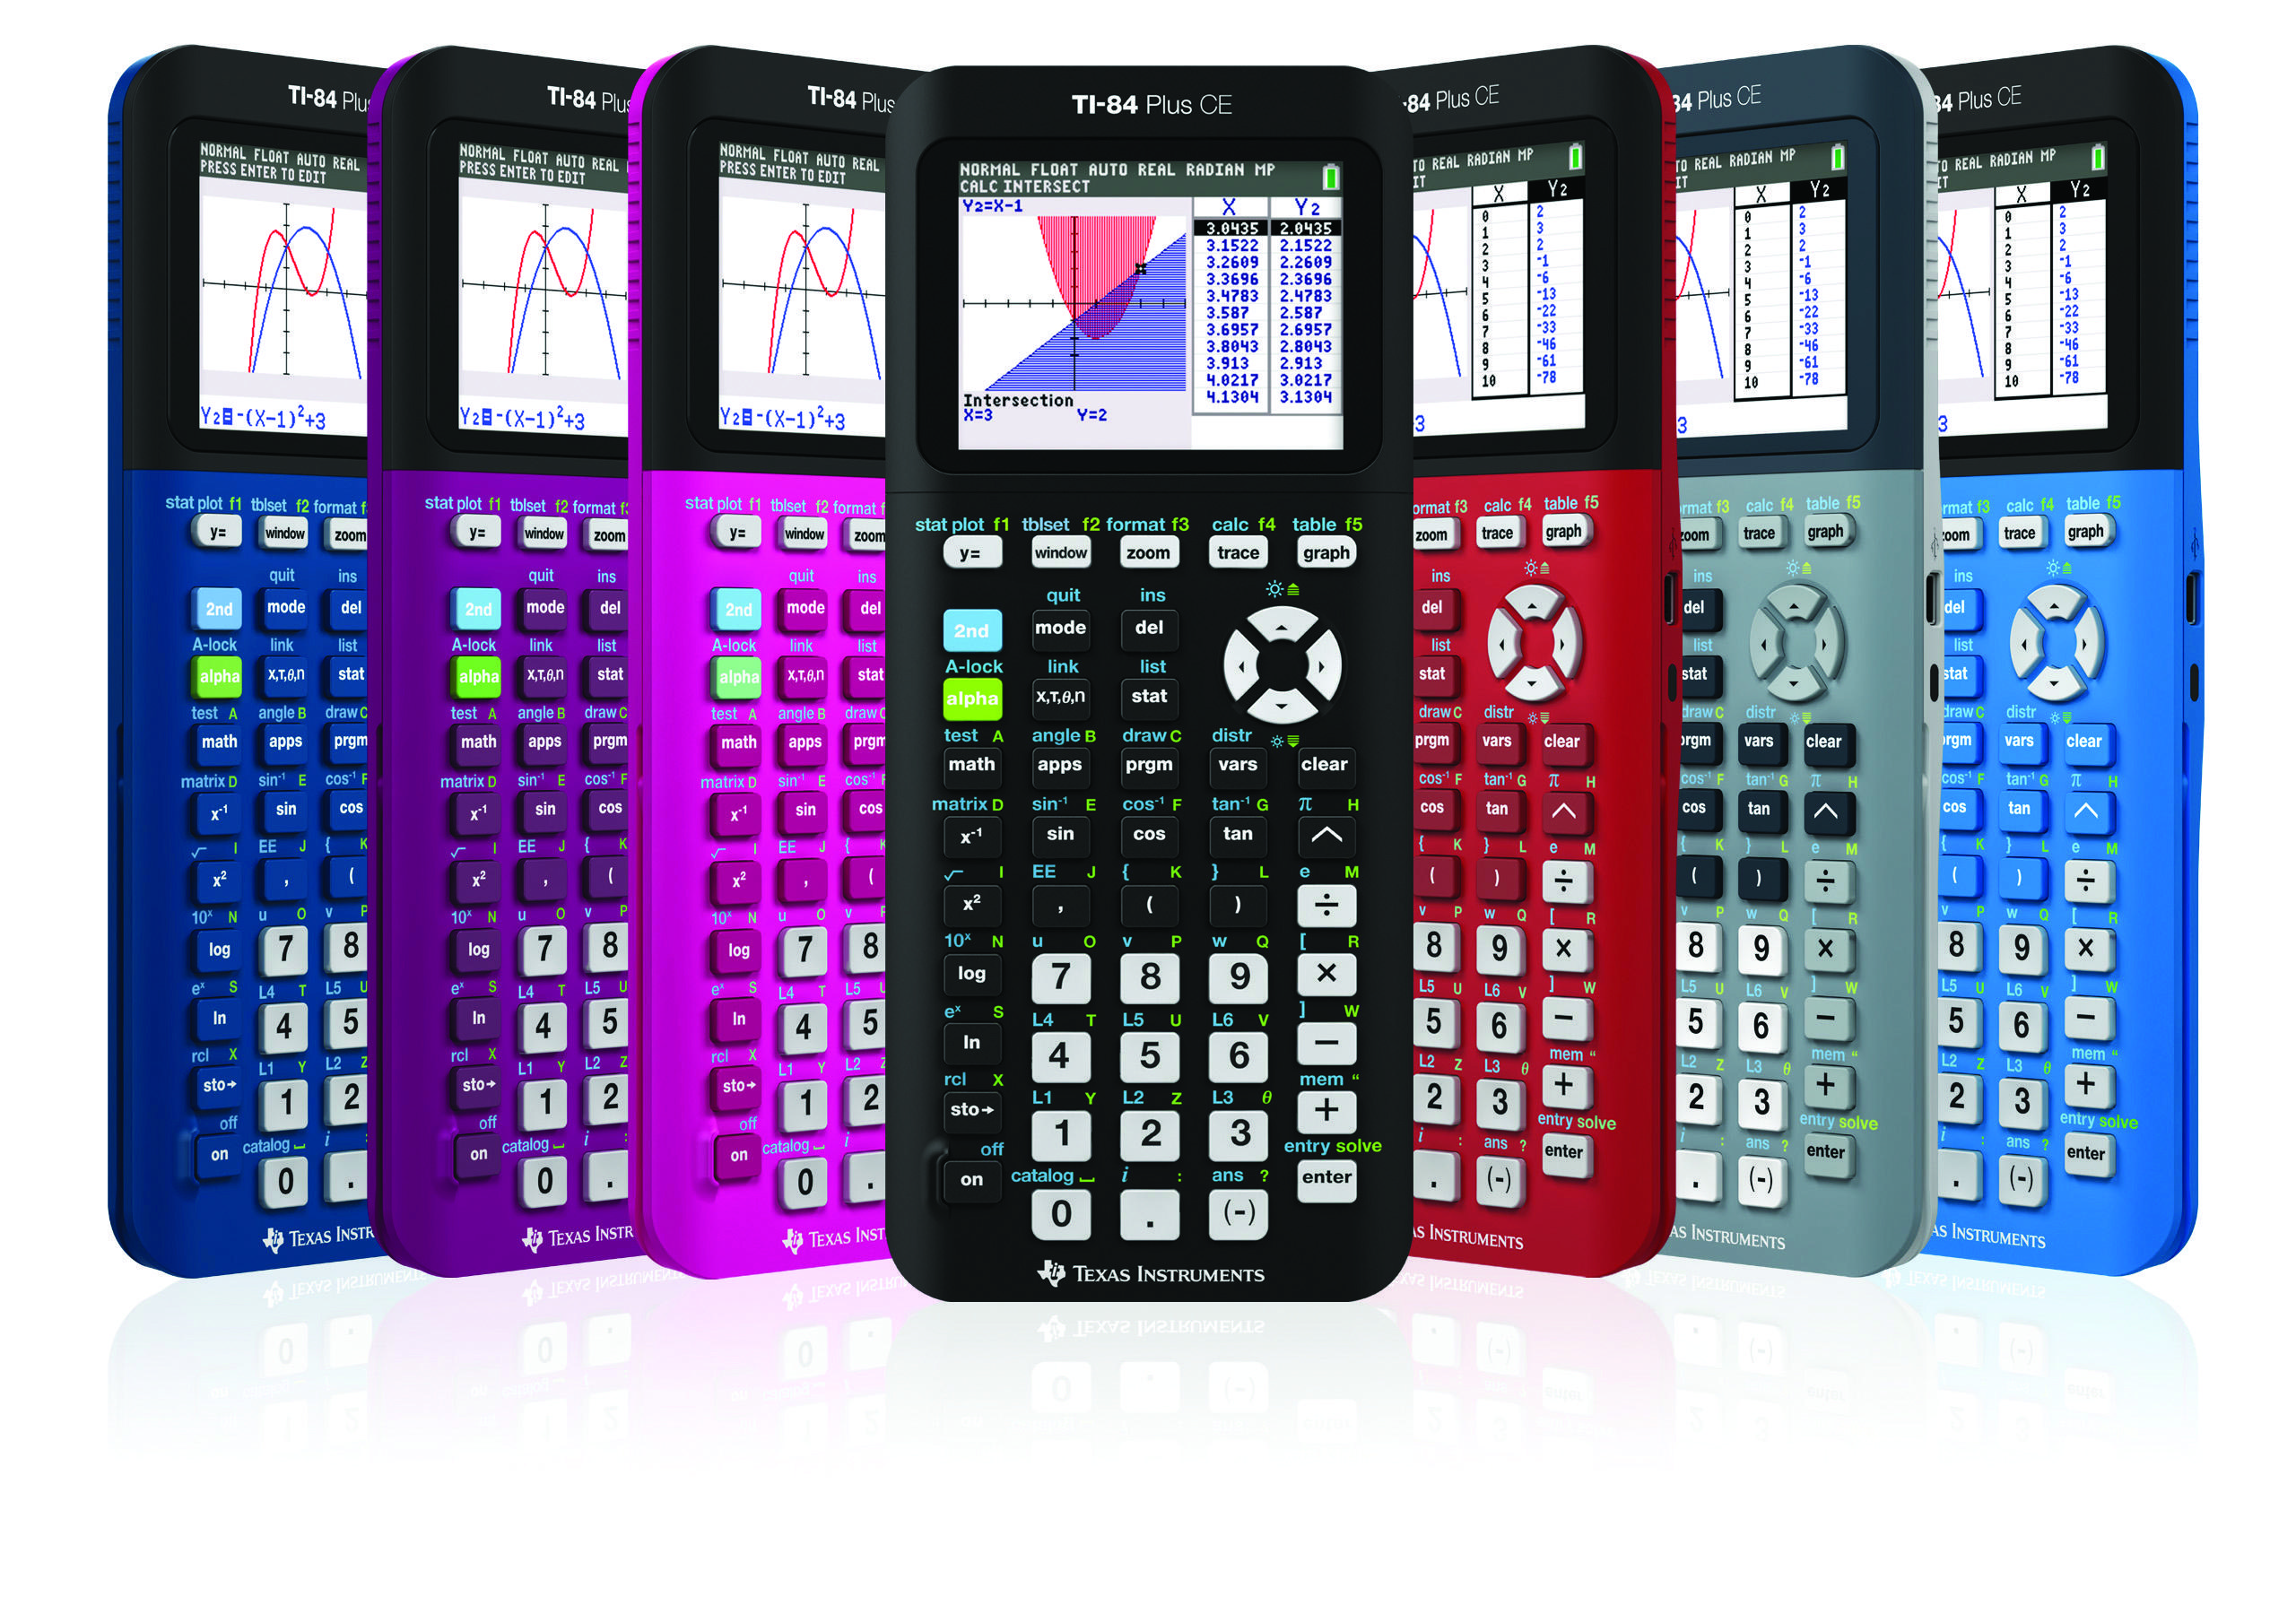 Texas Instruments - TI-84+CE Graphing Calculator